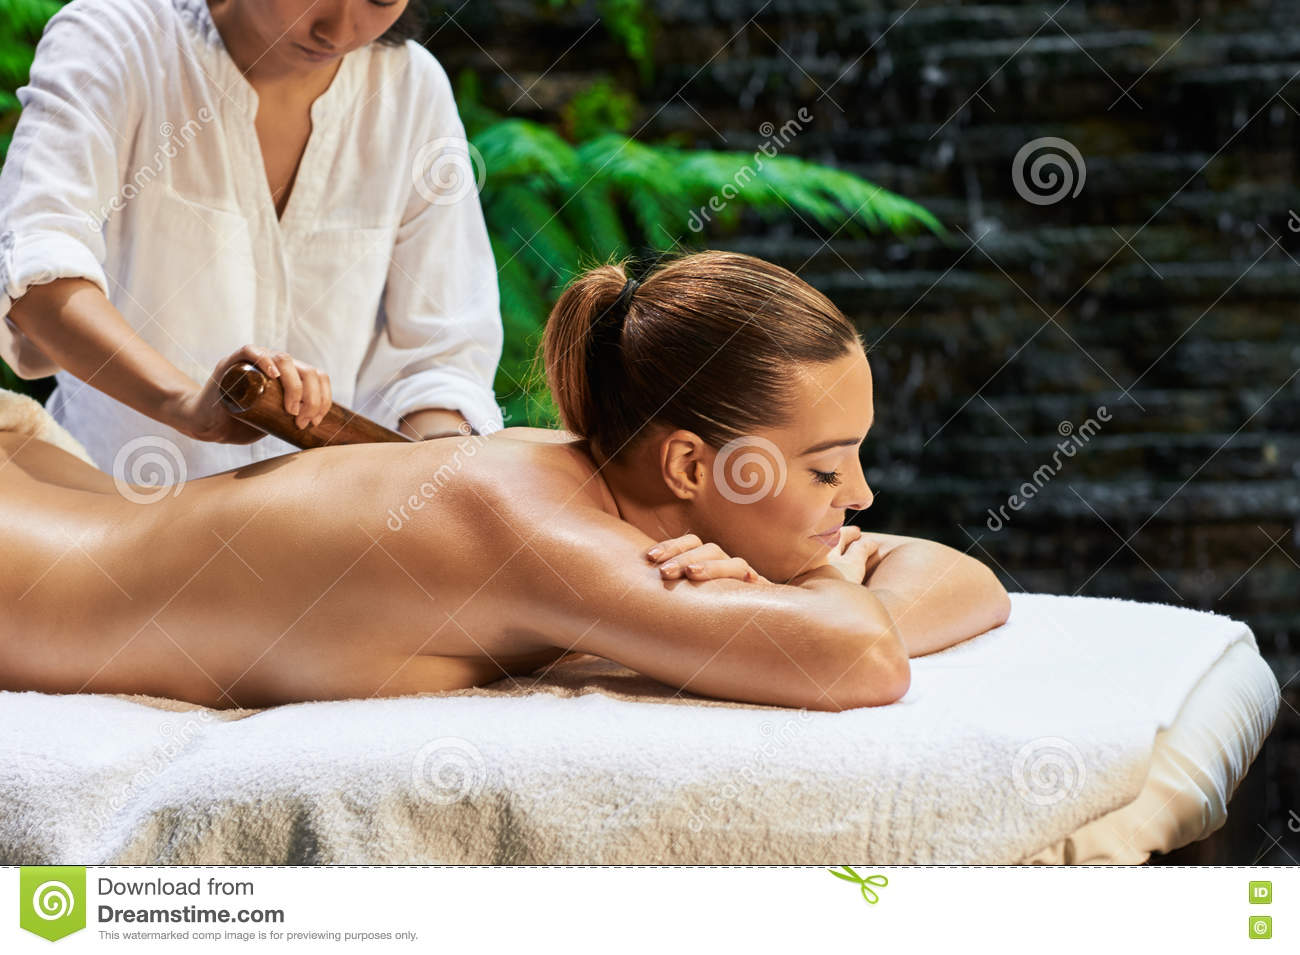 How to make hot stones for massage-8618